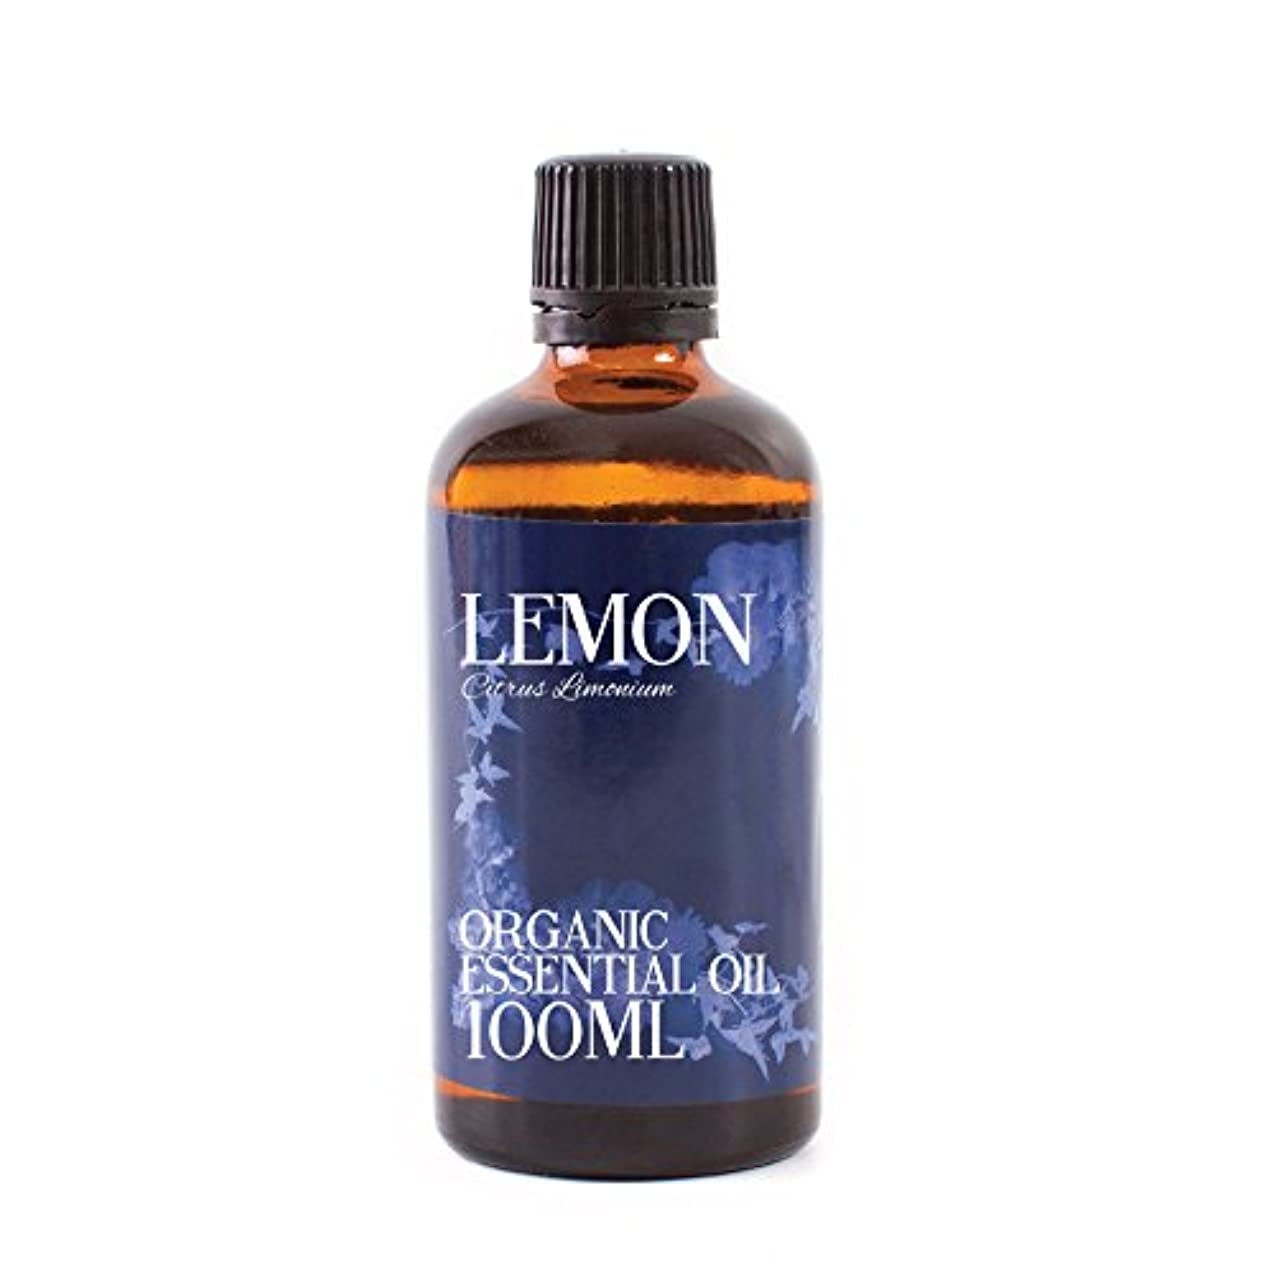 シェルター重くするプロポーショナルMystic Moments | Lemon Organic Essential Oil - 100ml - 100% Pure